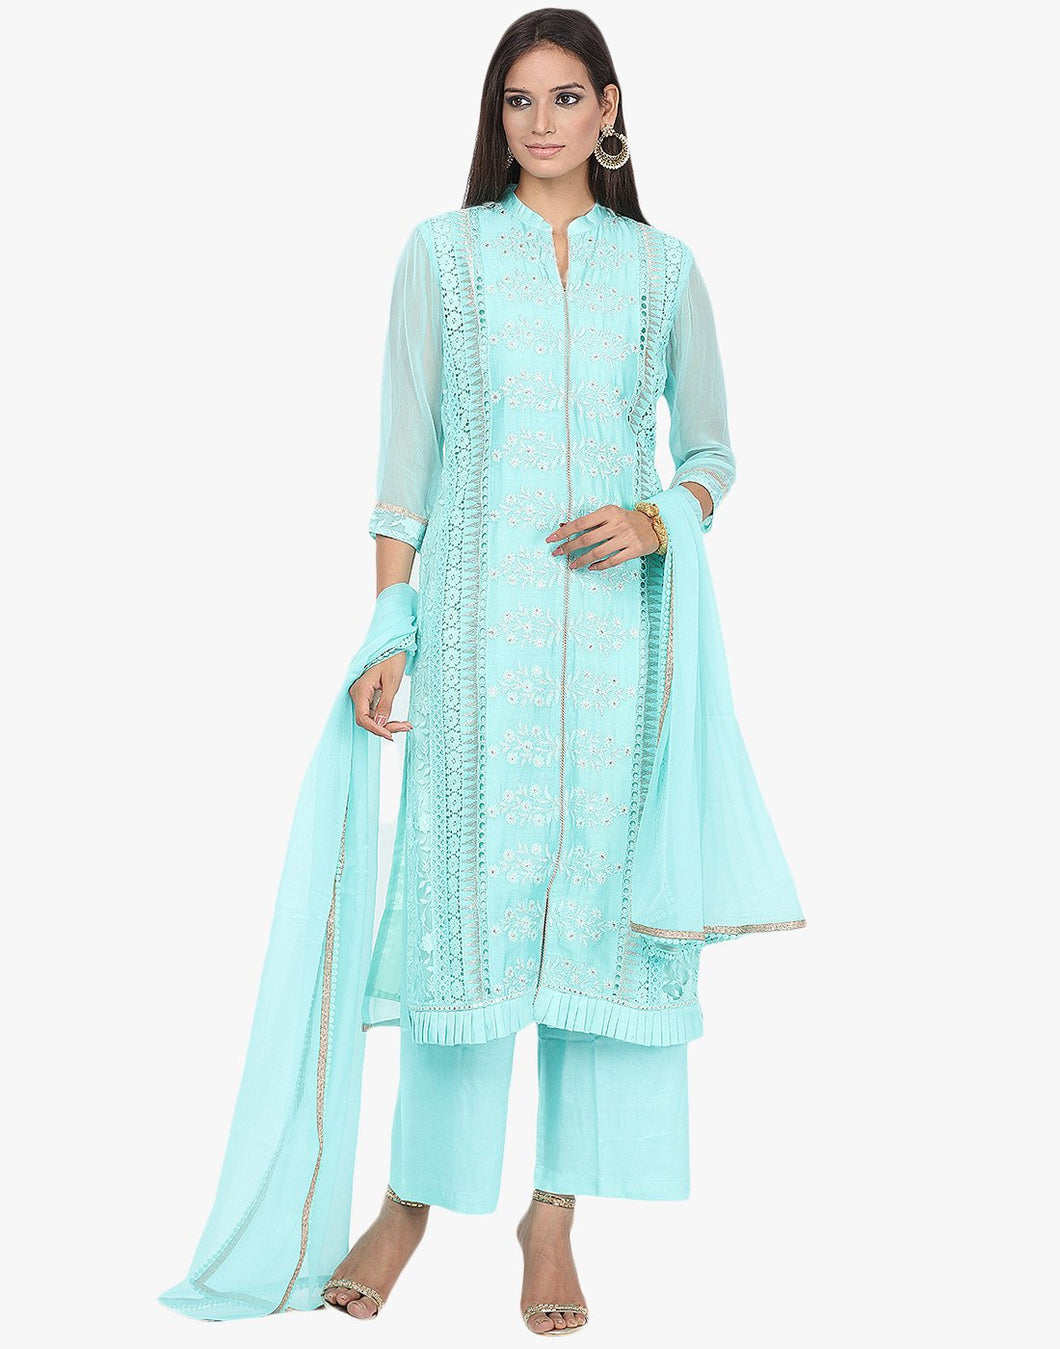 Unstitched Embroidered Georgette Suit By Meena Bazaar